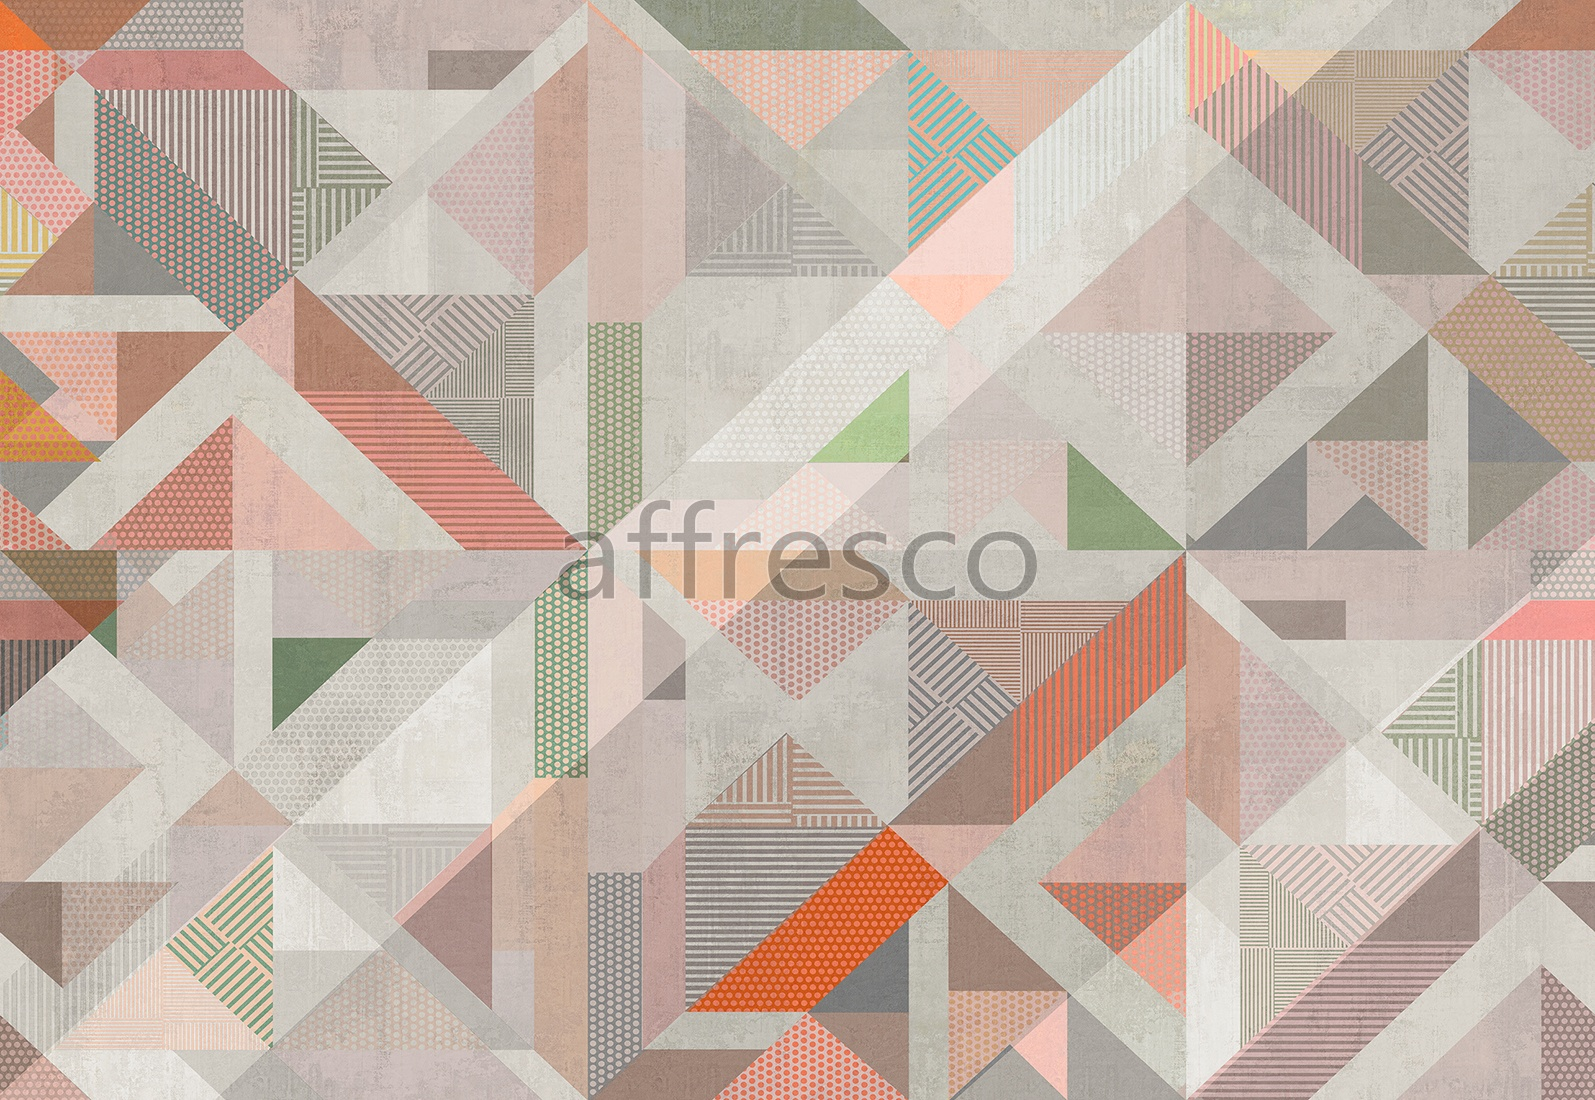 ID136358 | Geometry |  | Affresco Factory